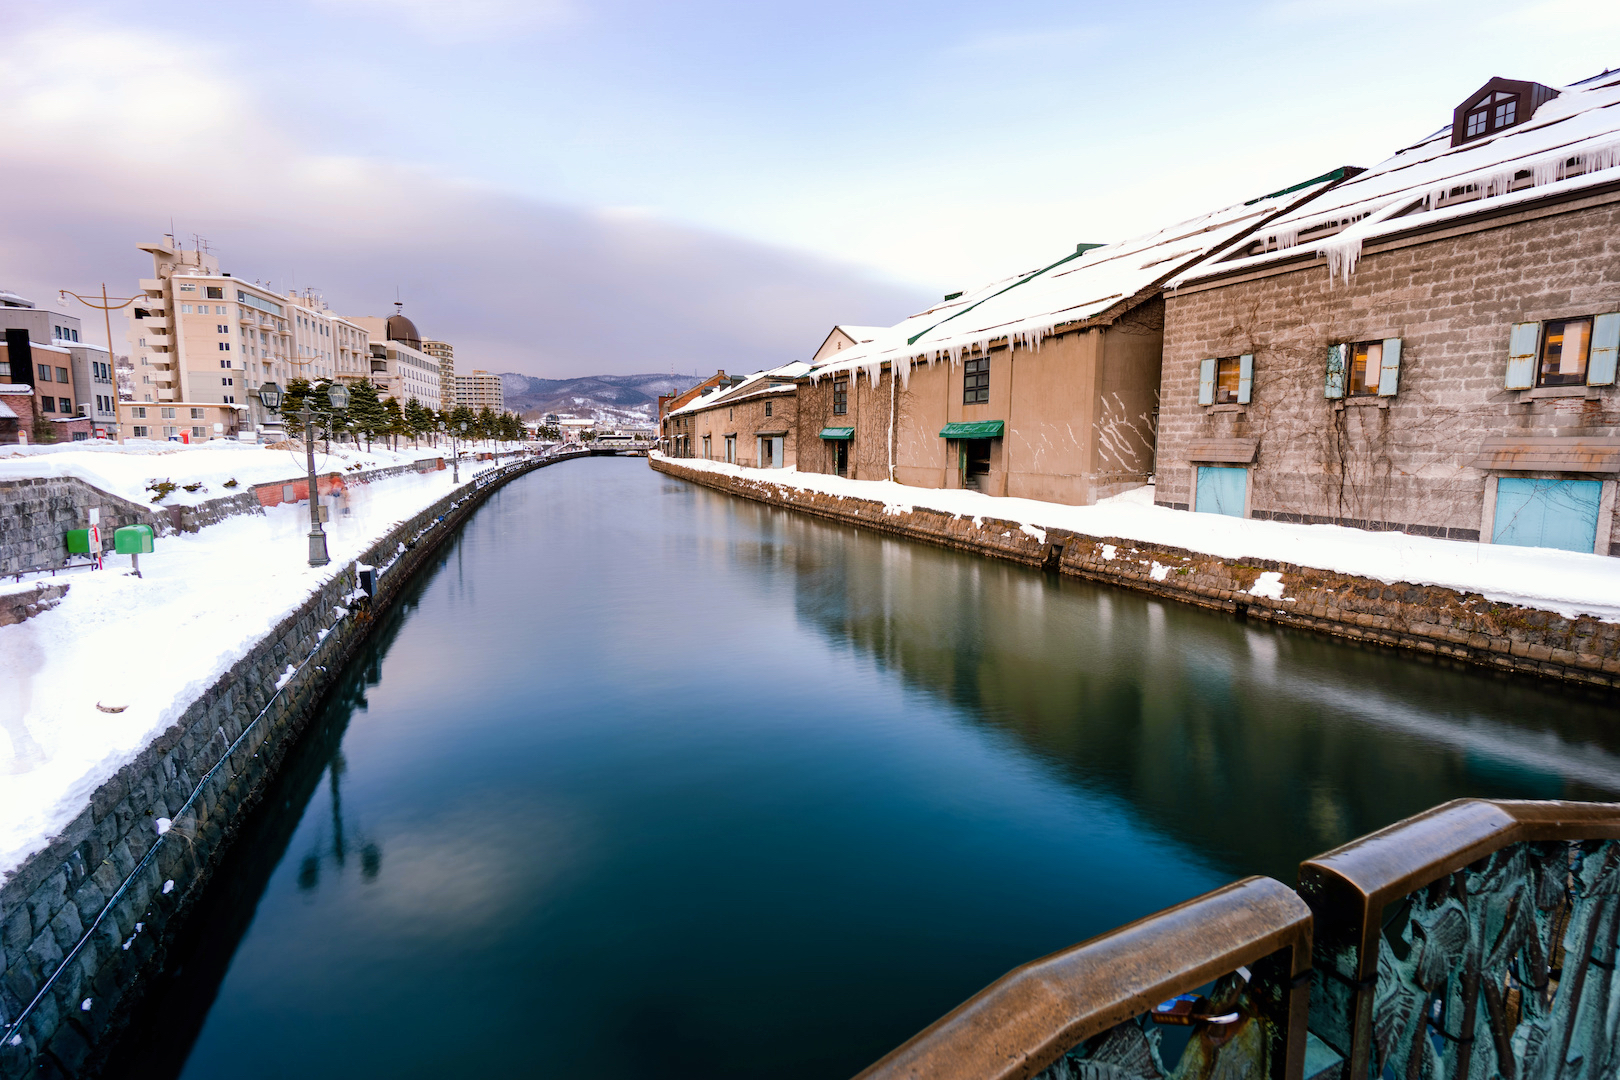 A view of the old warehouses along the banks of Otaru City's canal.